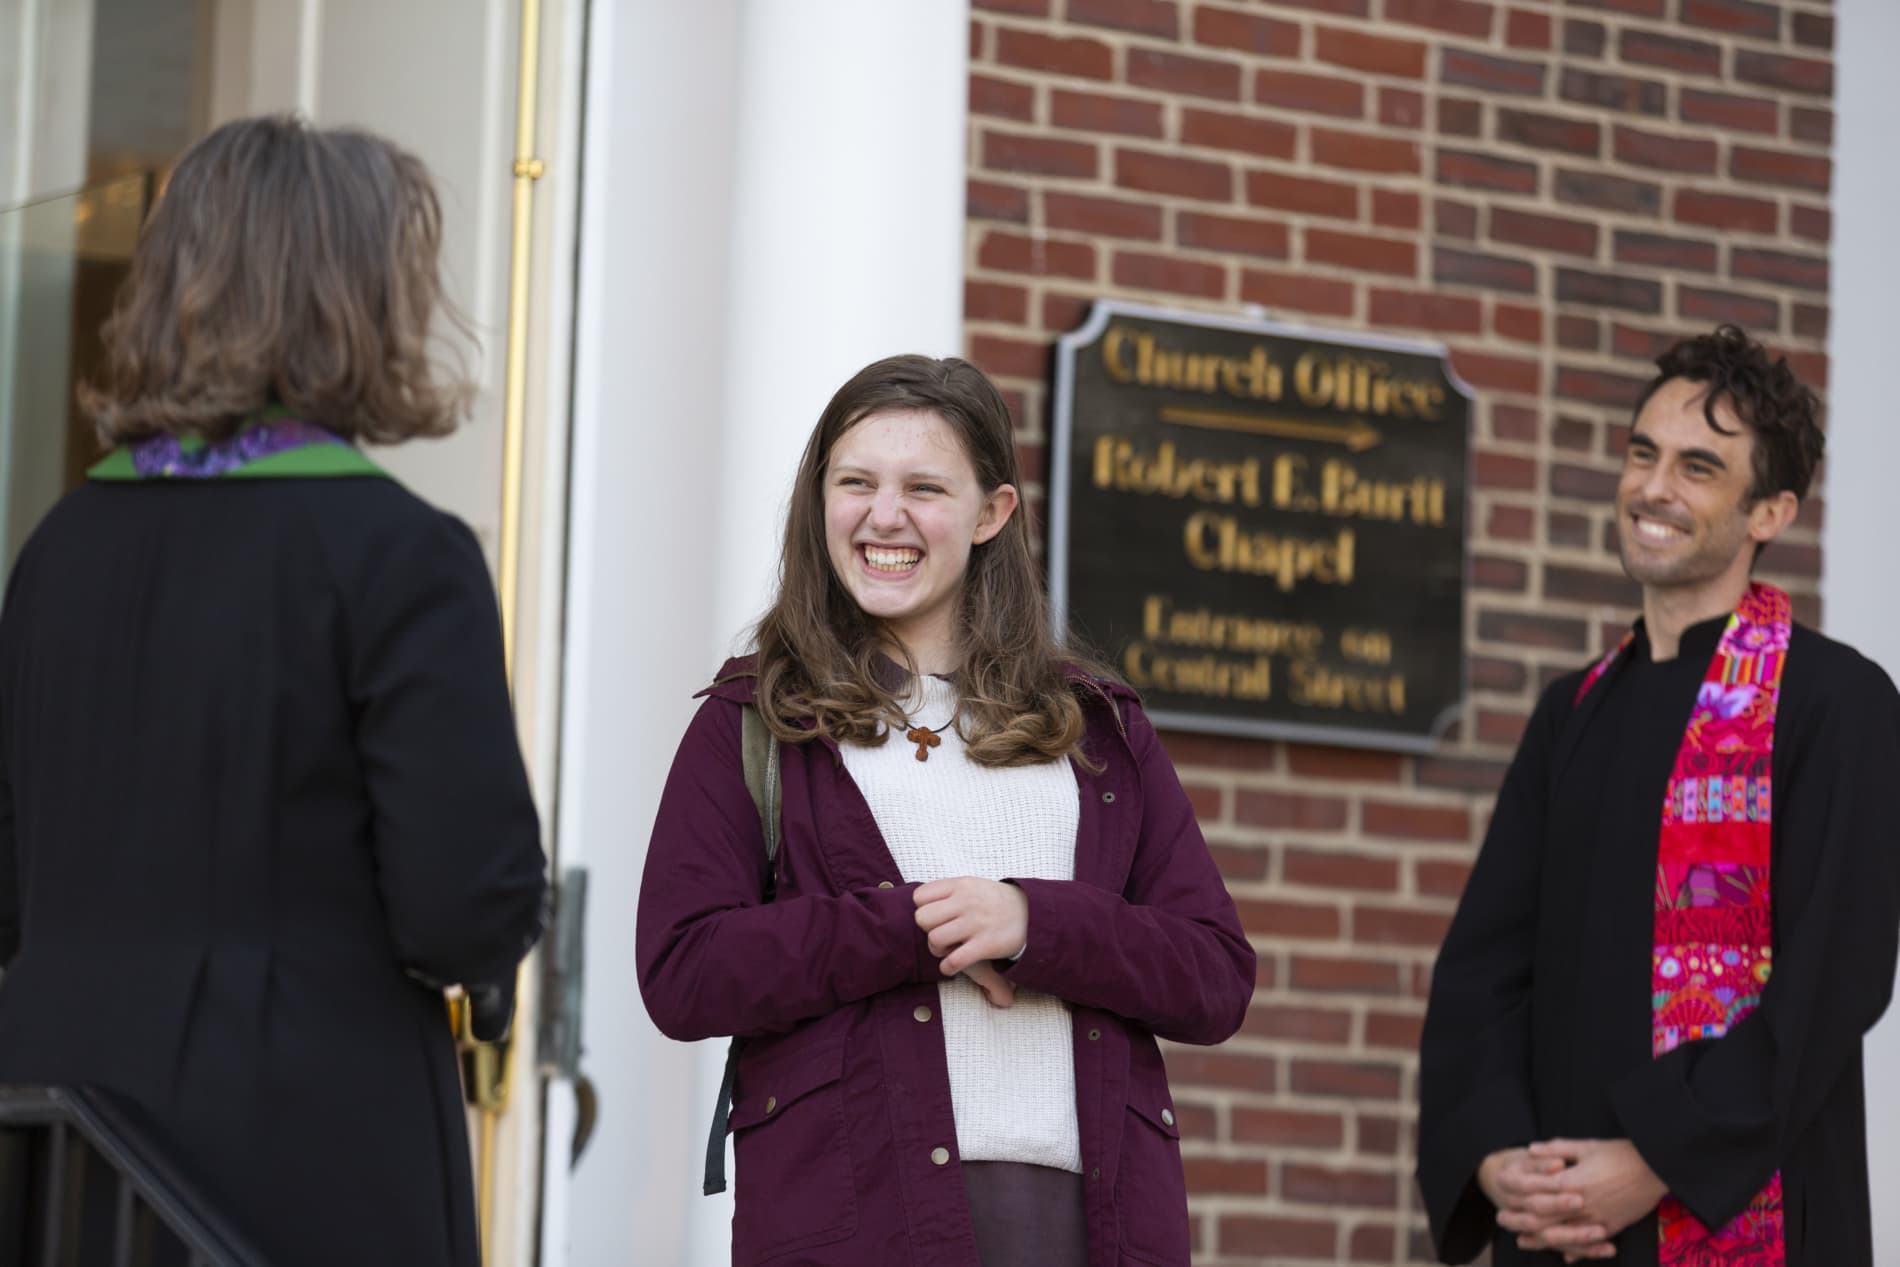 Two ministers greet a young woman as she arrives at church